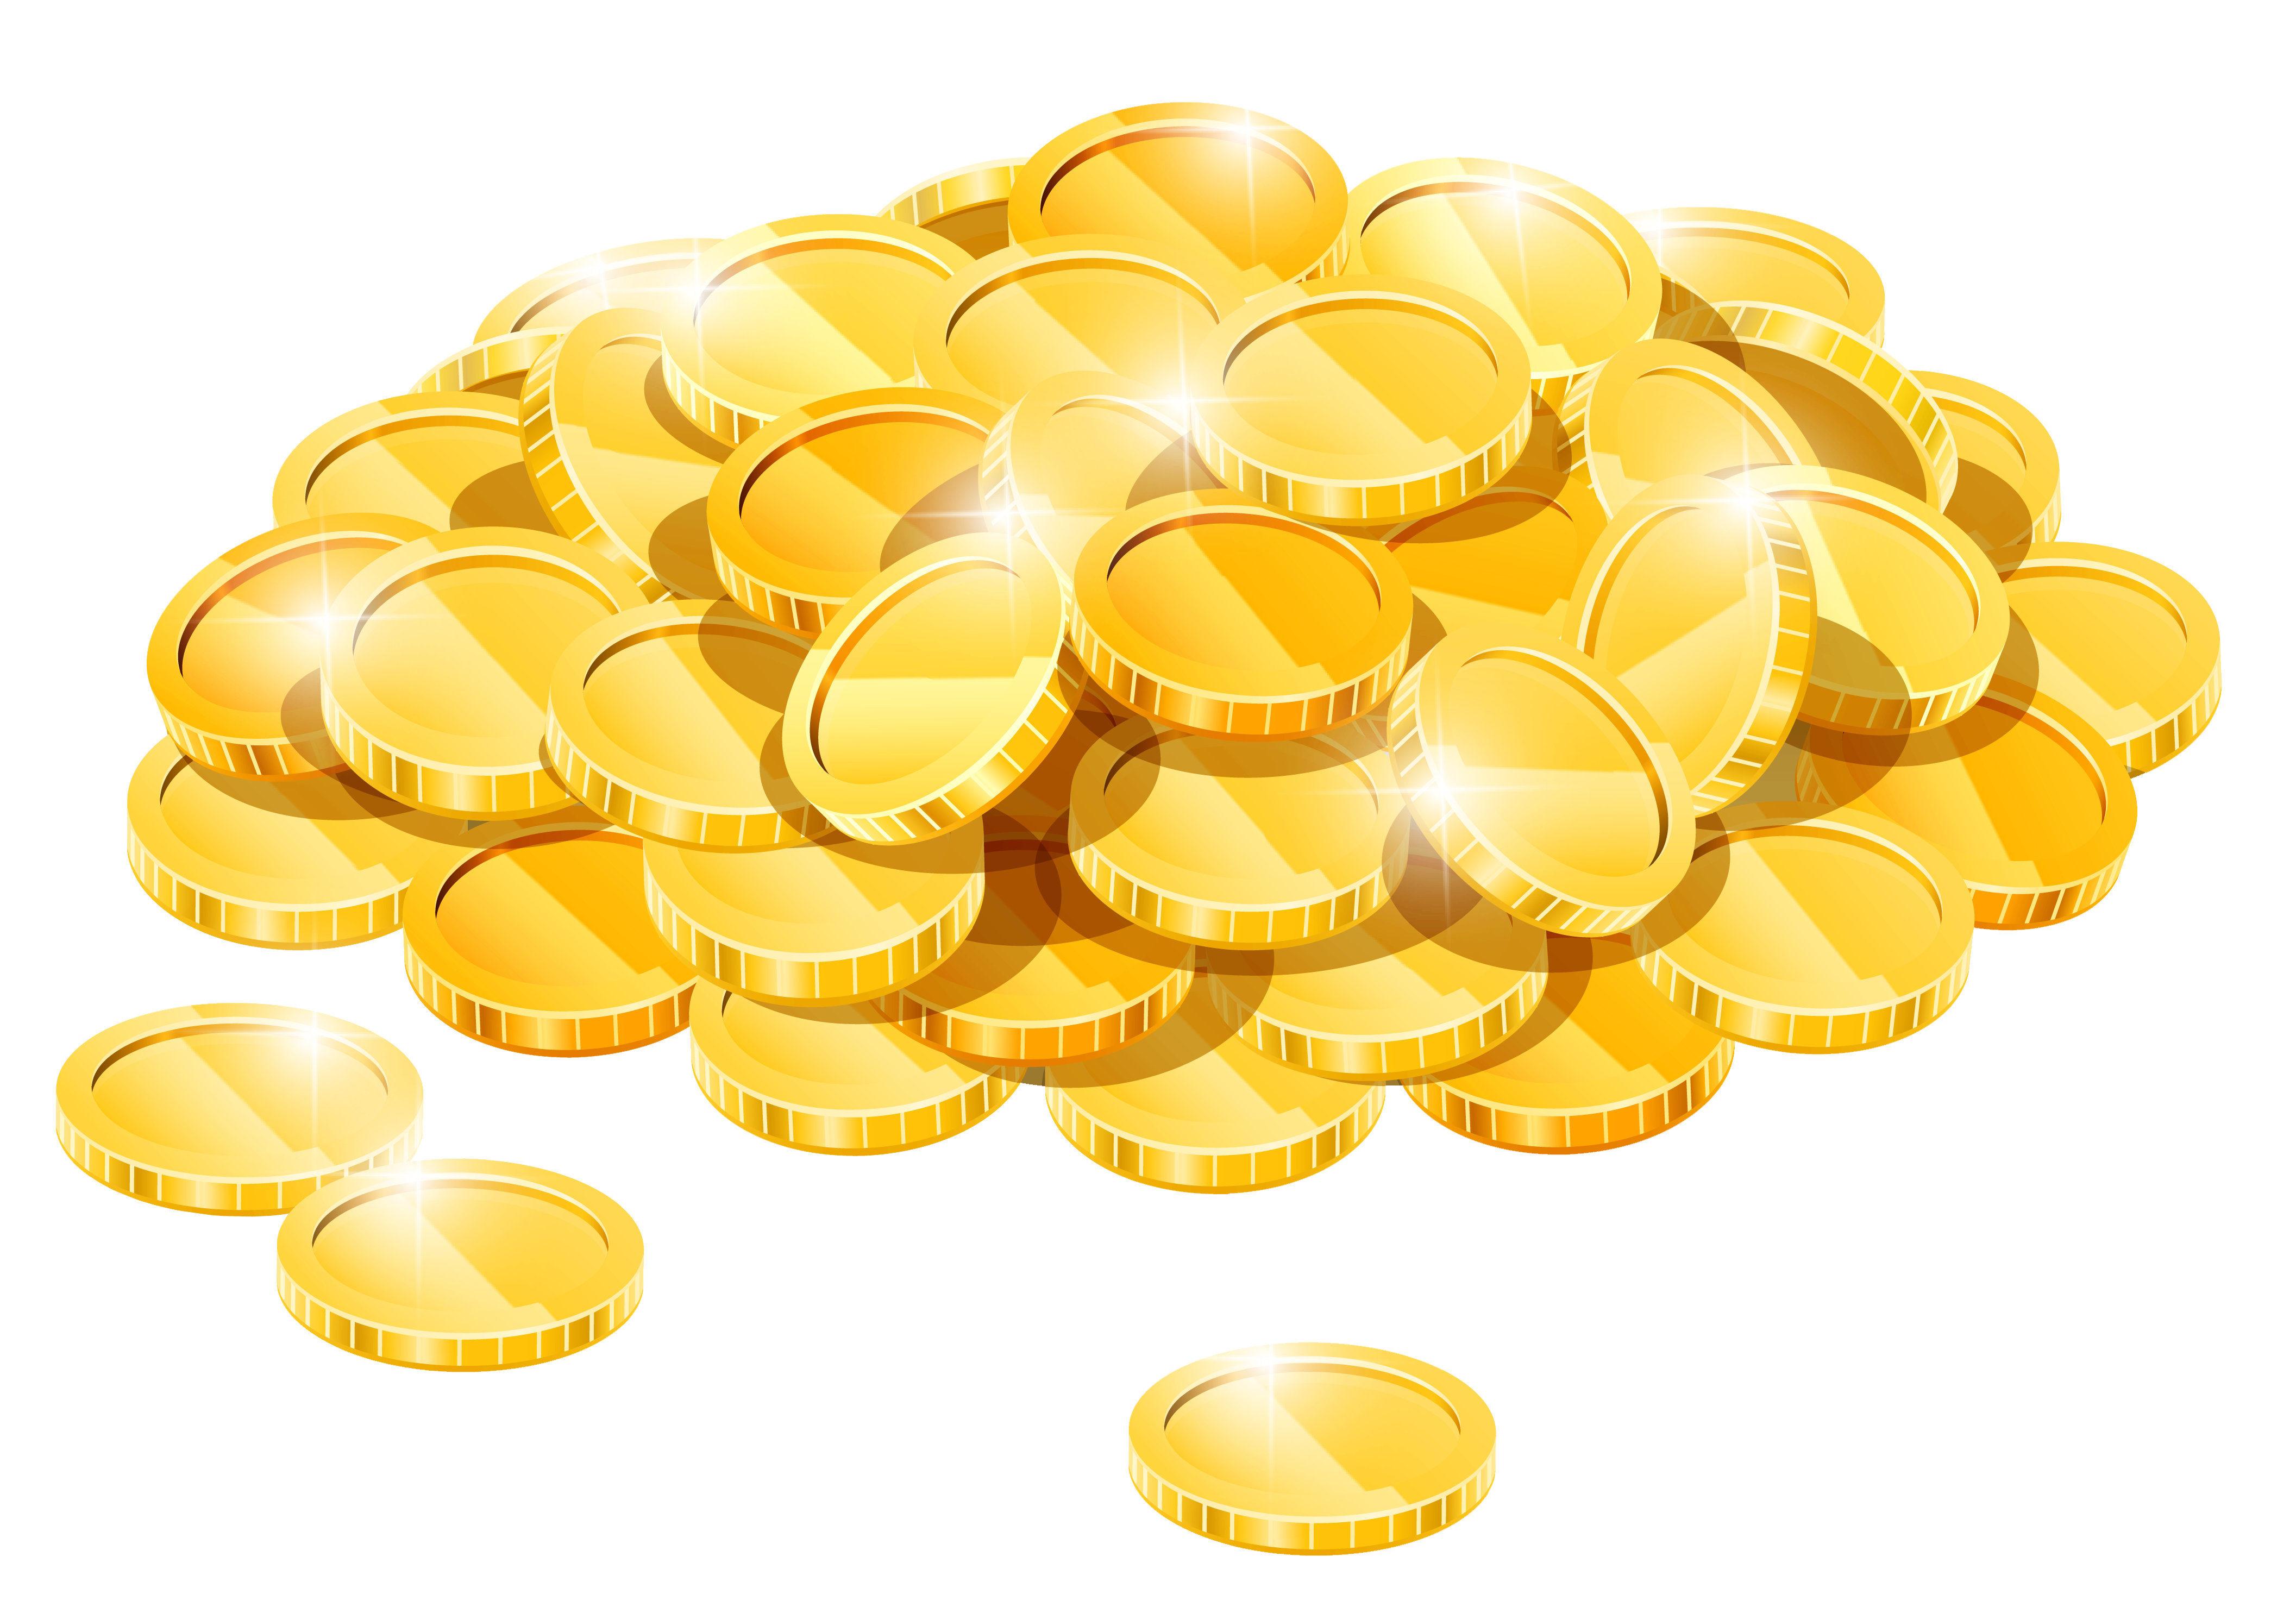 Coins money coin graphics. Zucchini clipart patola